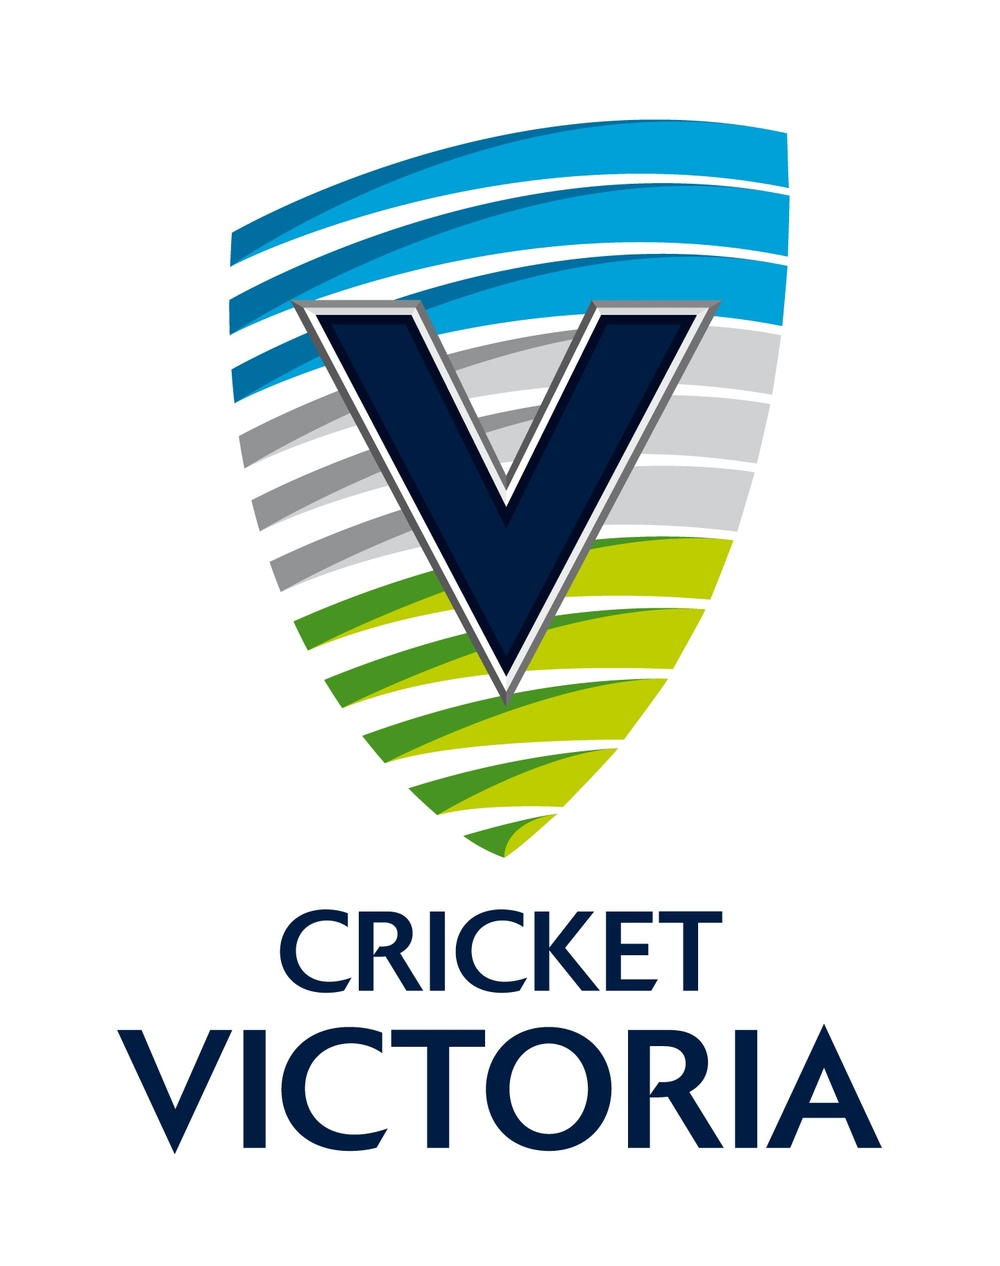 Cricket Victoria logo (New as at October 2010).JPG